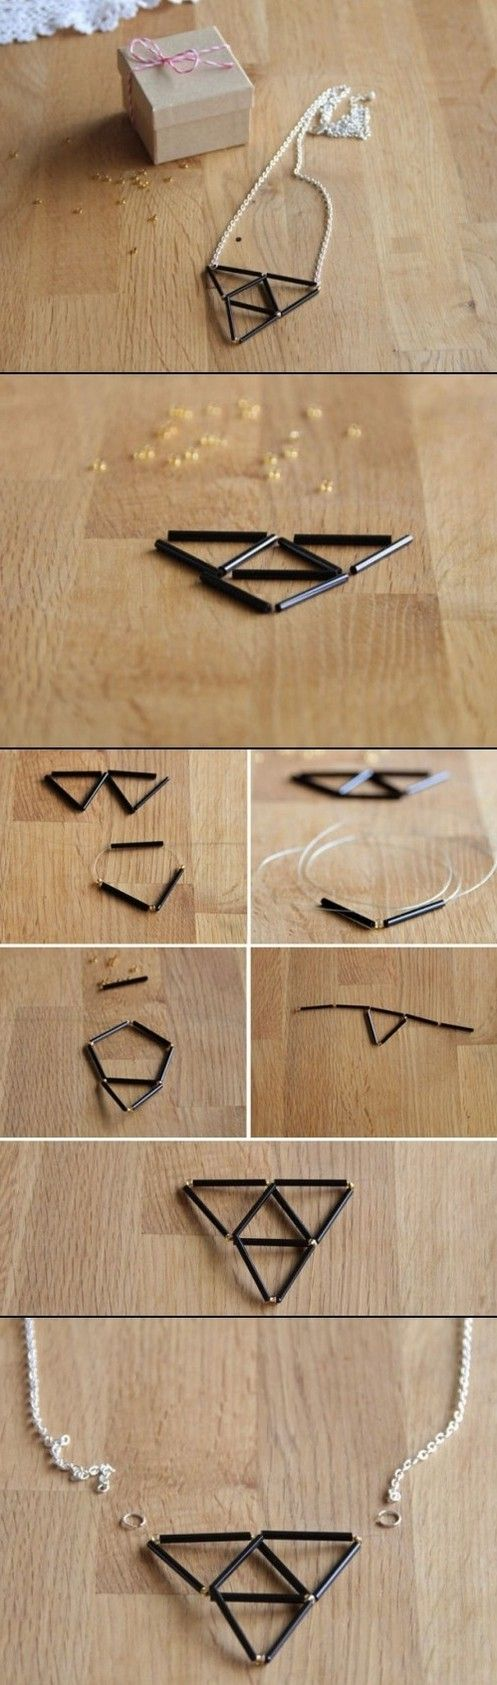 use drinking straw for kids to make their own design necklace